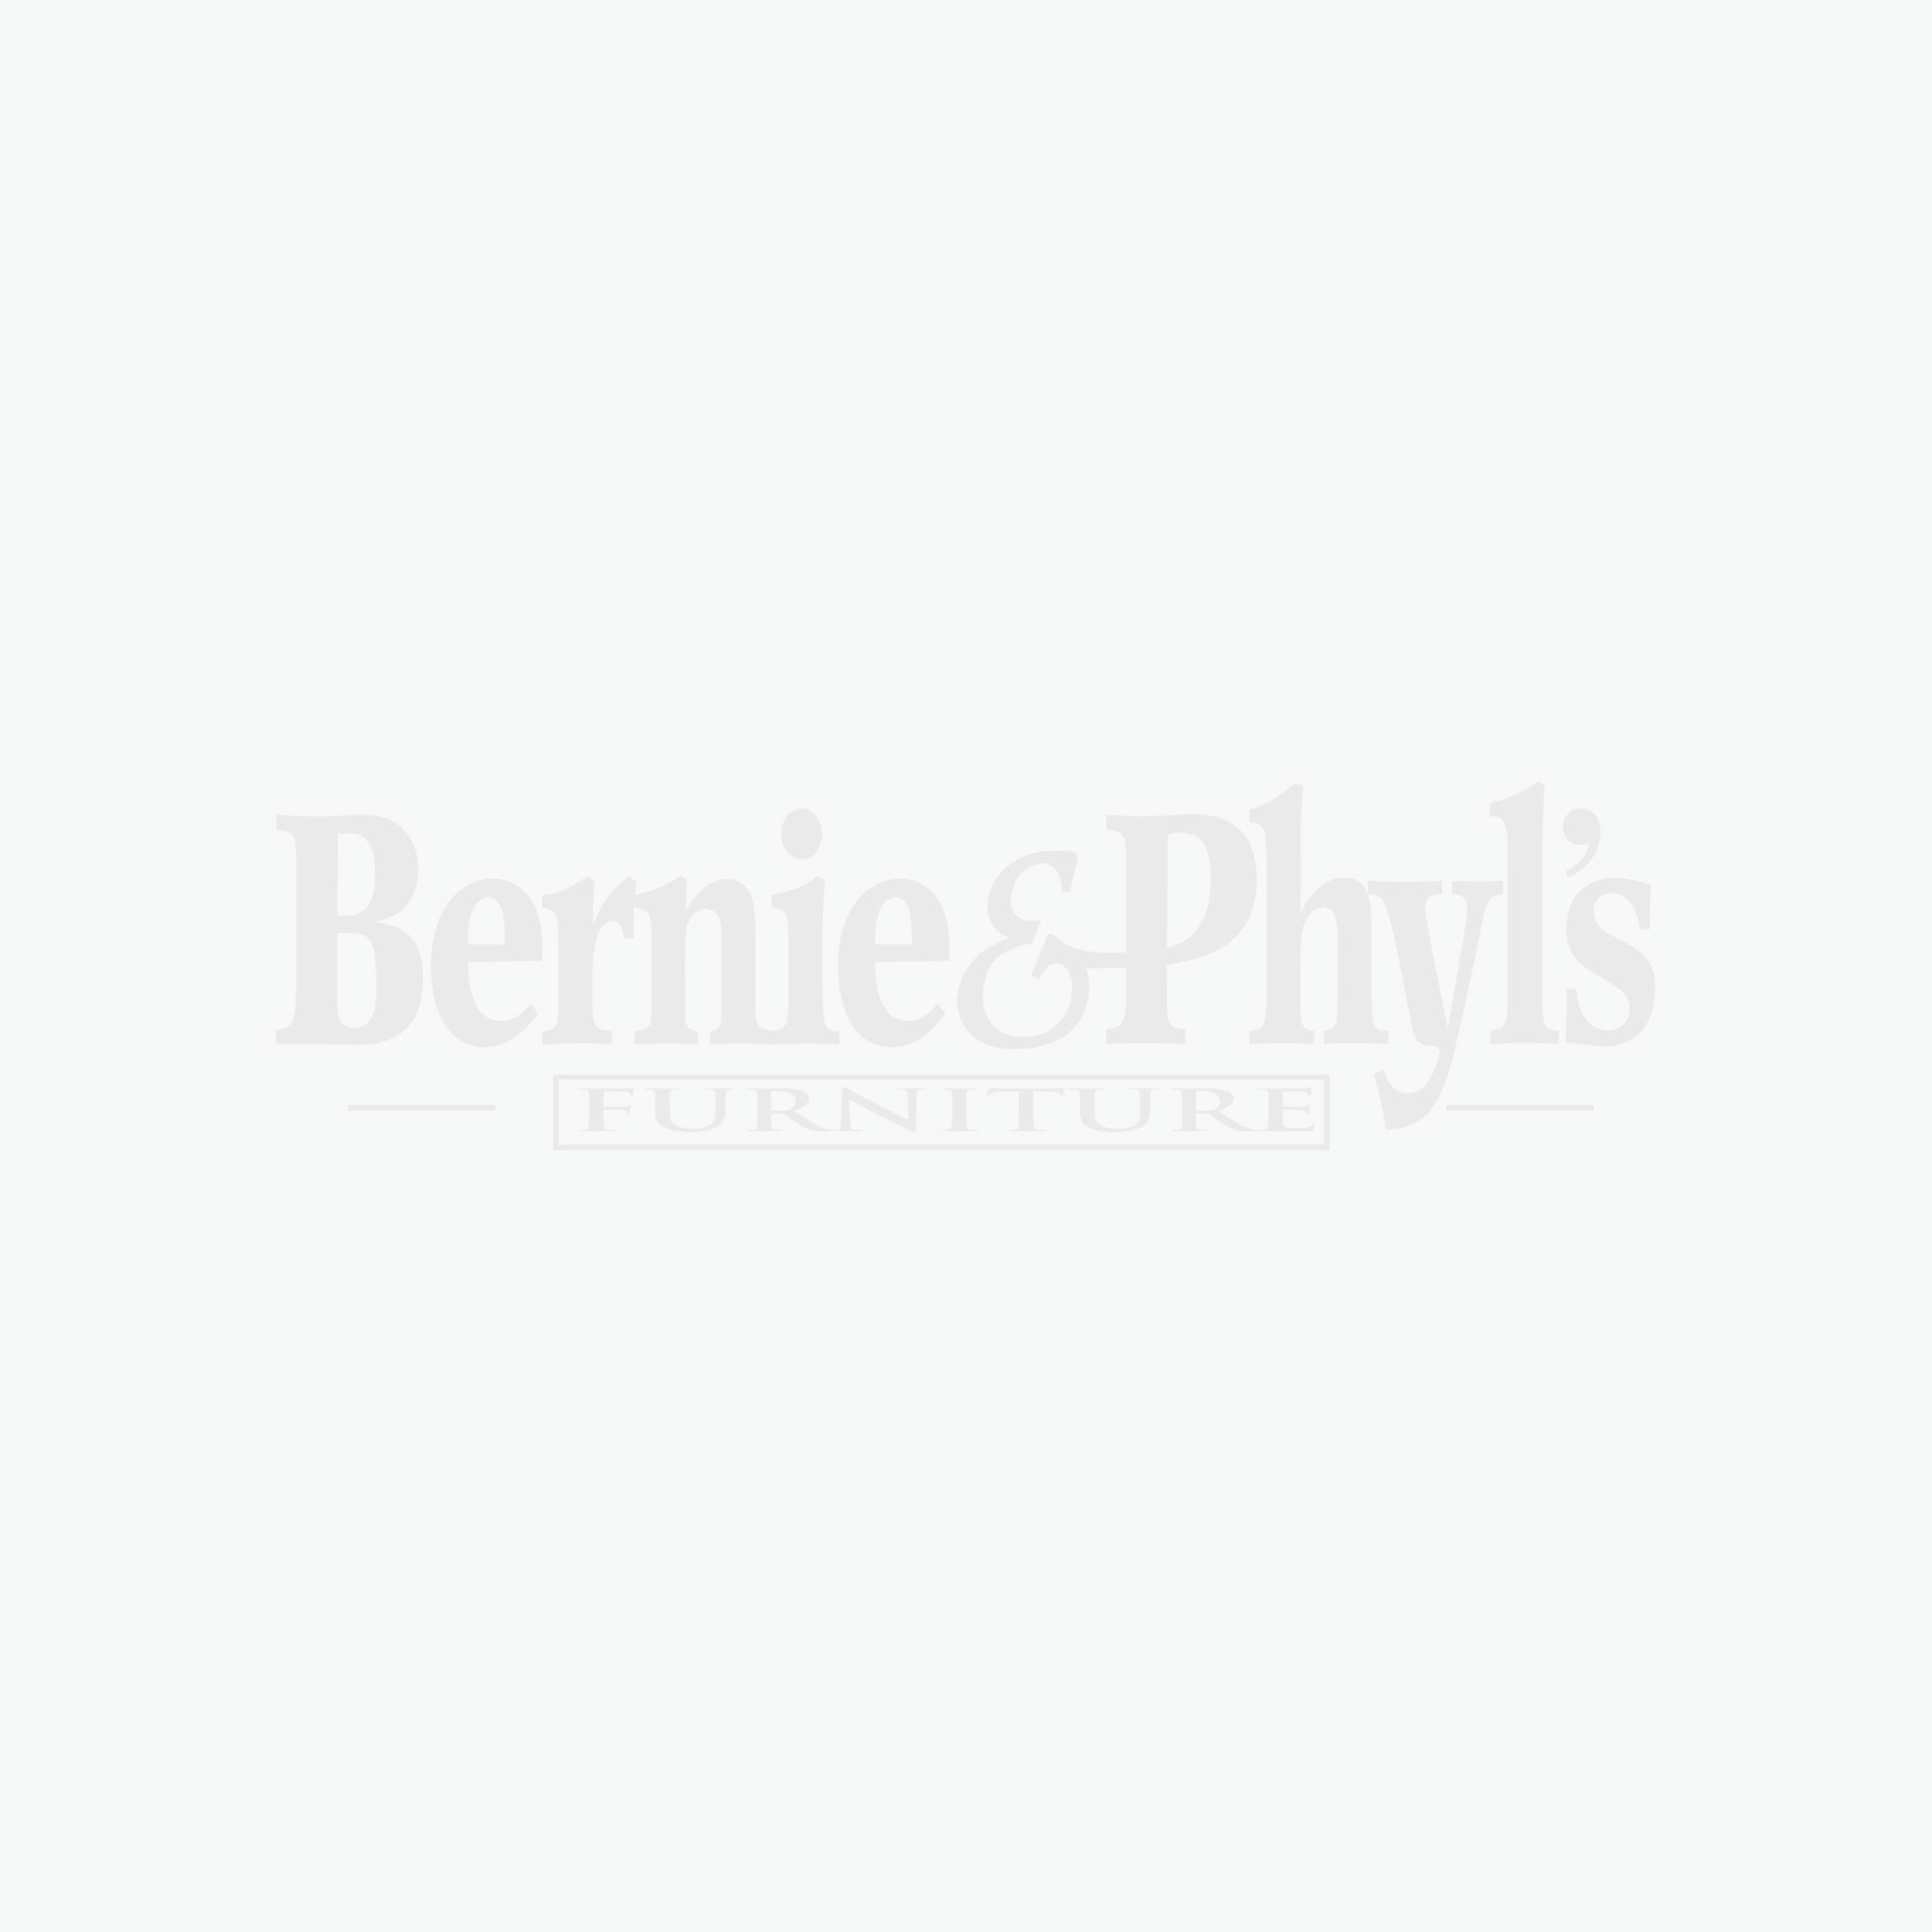 Hatsuko End Table Bernie Phyl S Furniture By Ashley Furniture